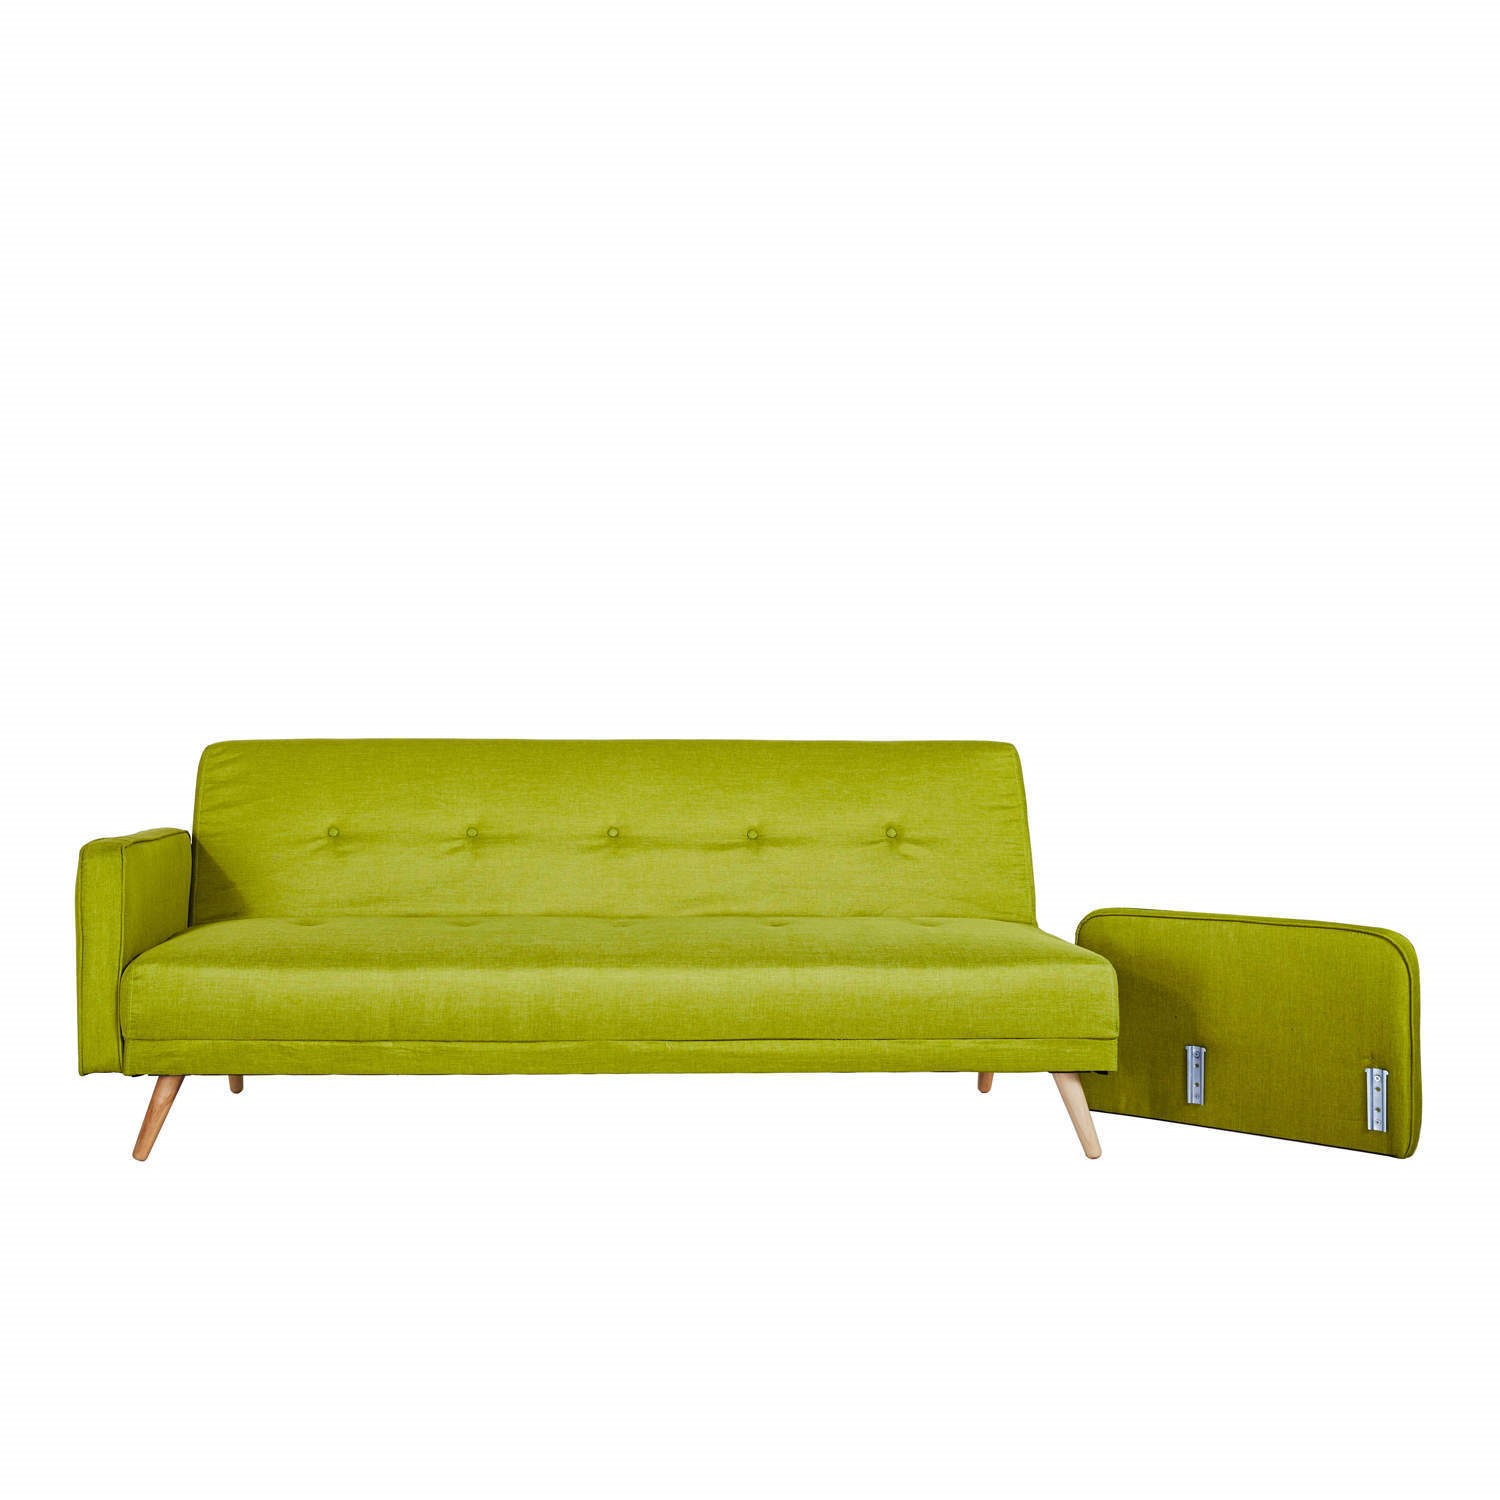 Fantastic Milu 3 Seater Fabric Sofa Bed In Lime Green Caraccident5 Cool Chair Designs And Ideas Caraccident5Info